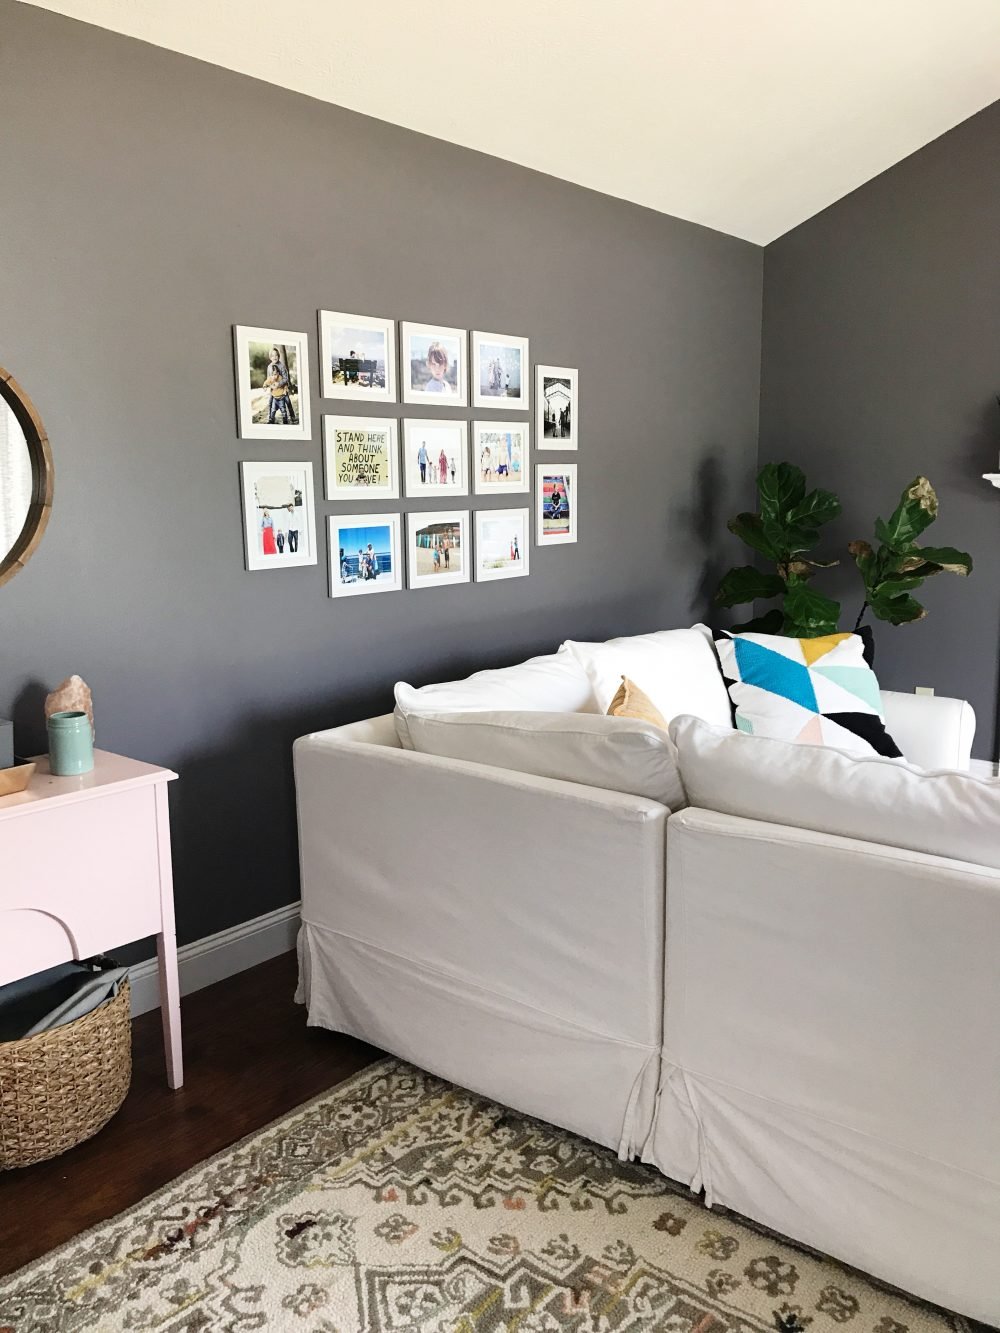 Sharing how I finally got our family photos of my devices and onto our walls + tips for creating your own gallery walls with Artifact Uprising | ohlovelyday.com